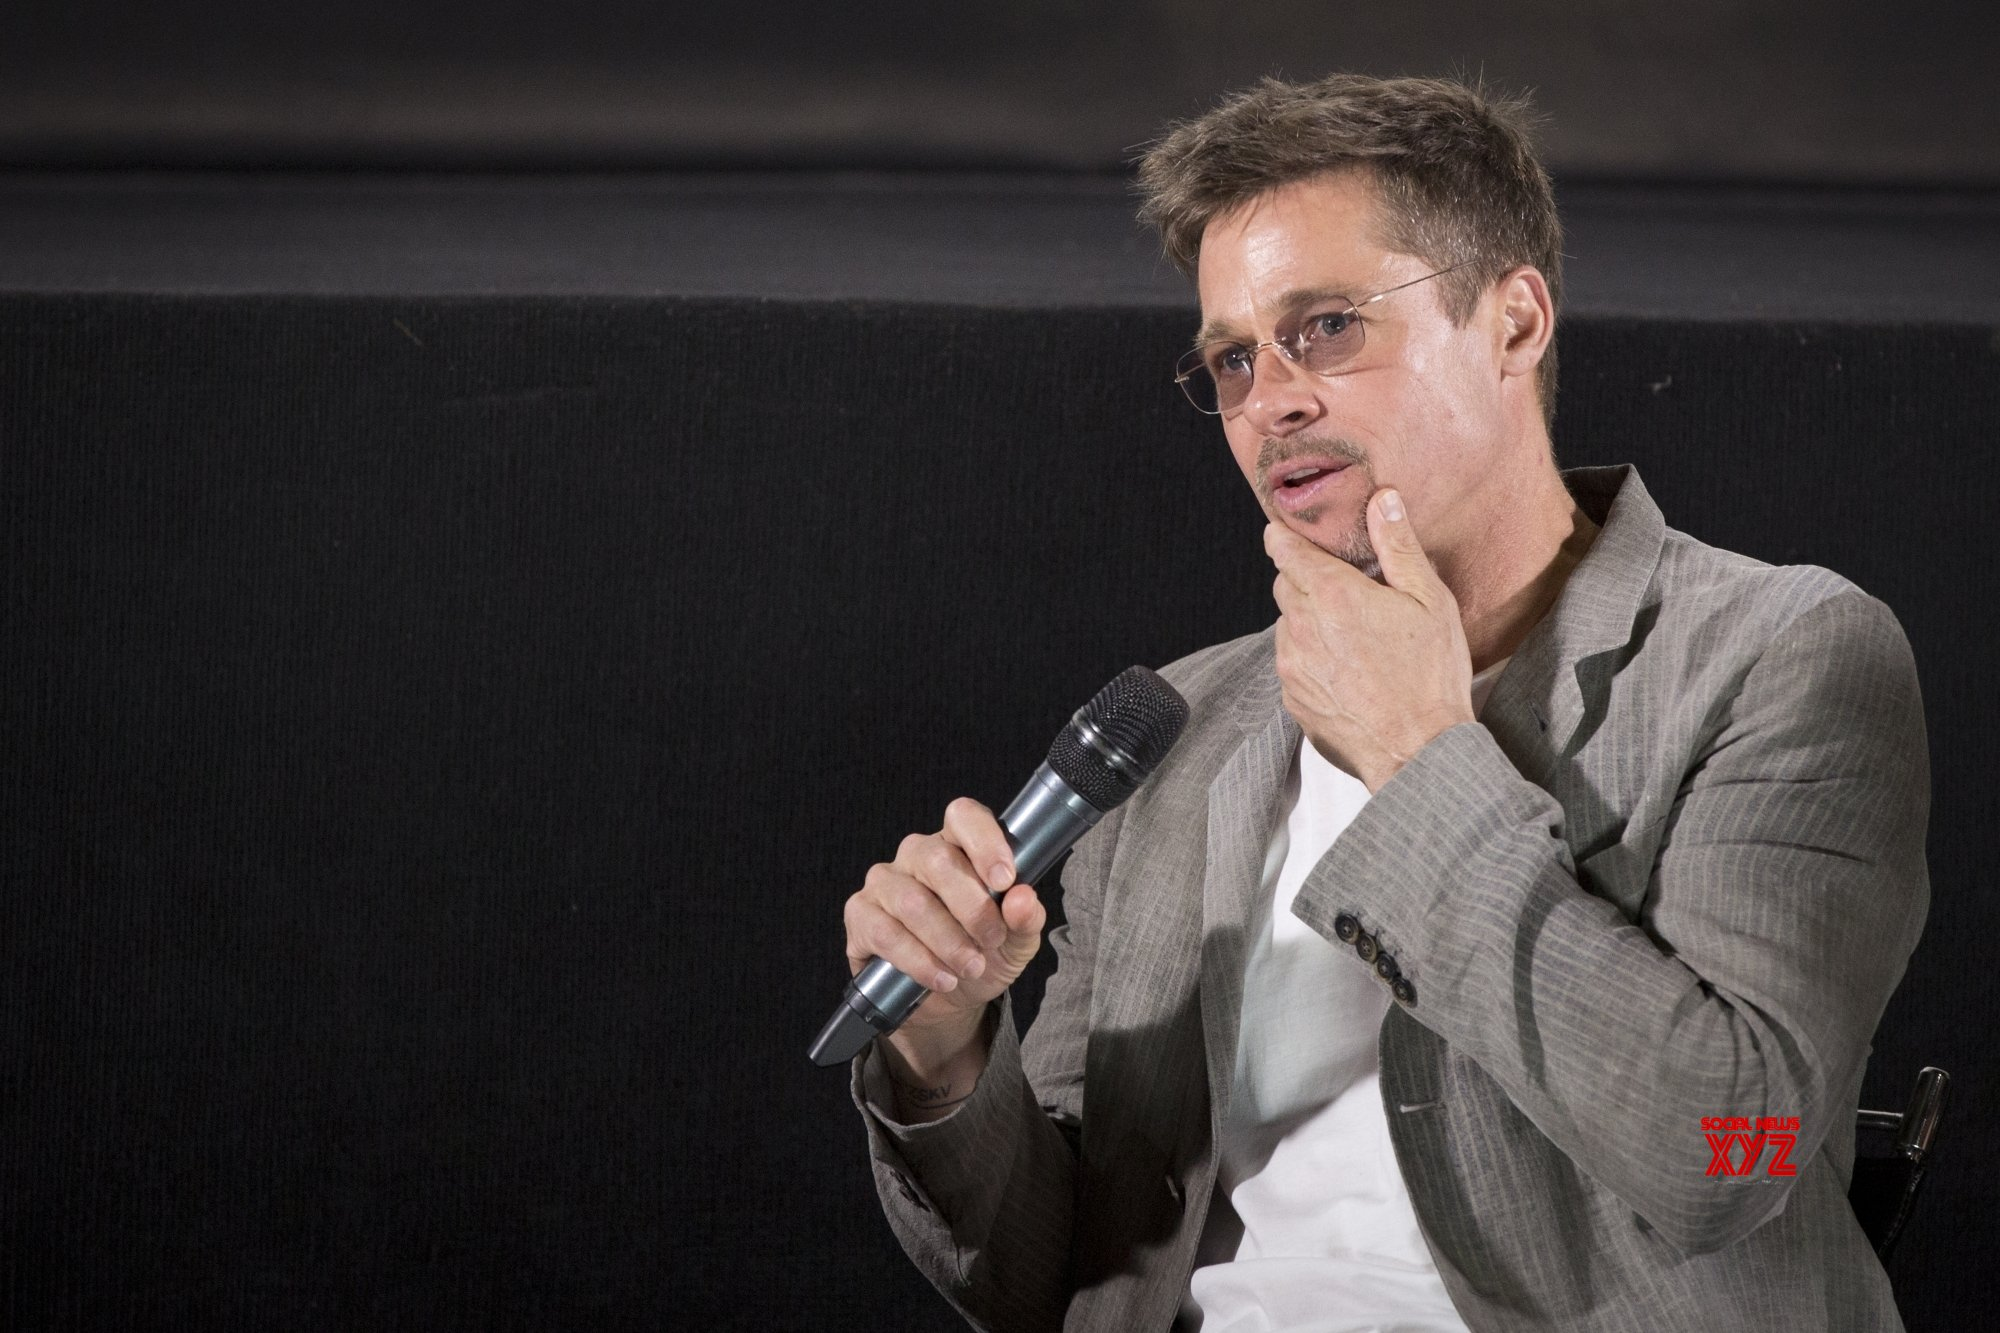 Brad Pitt grown more emotional despite never crying in 20 yrs